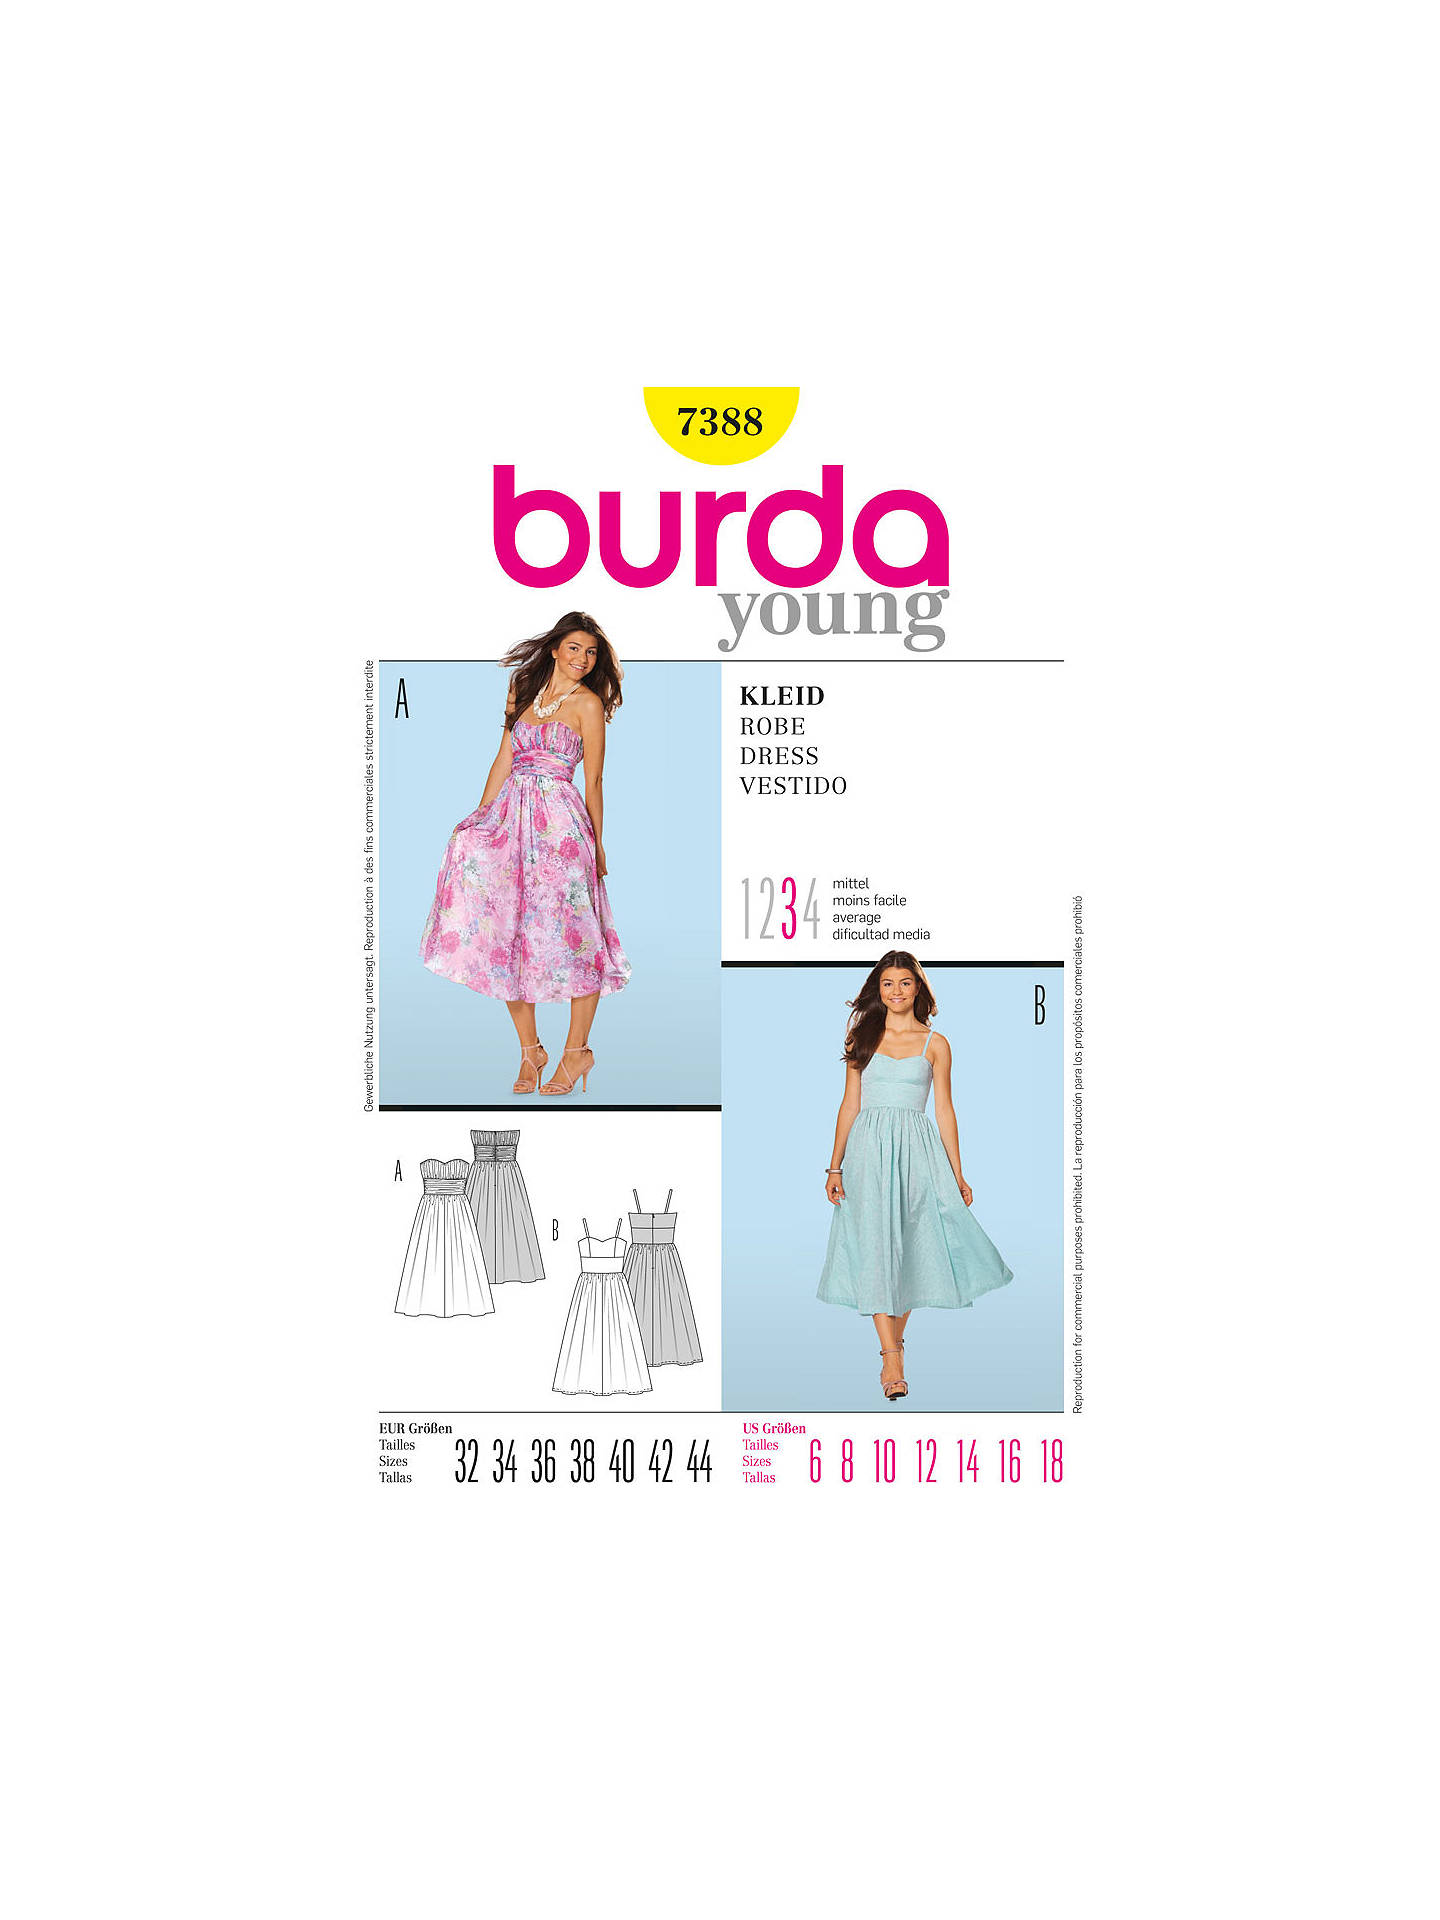 Burda Young Women\'s Dress Sewing Pattern, 7388 at John Lewis & Partners